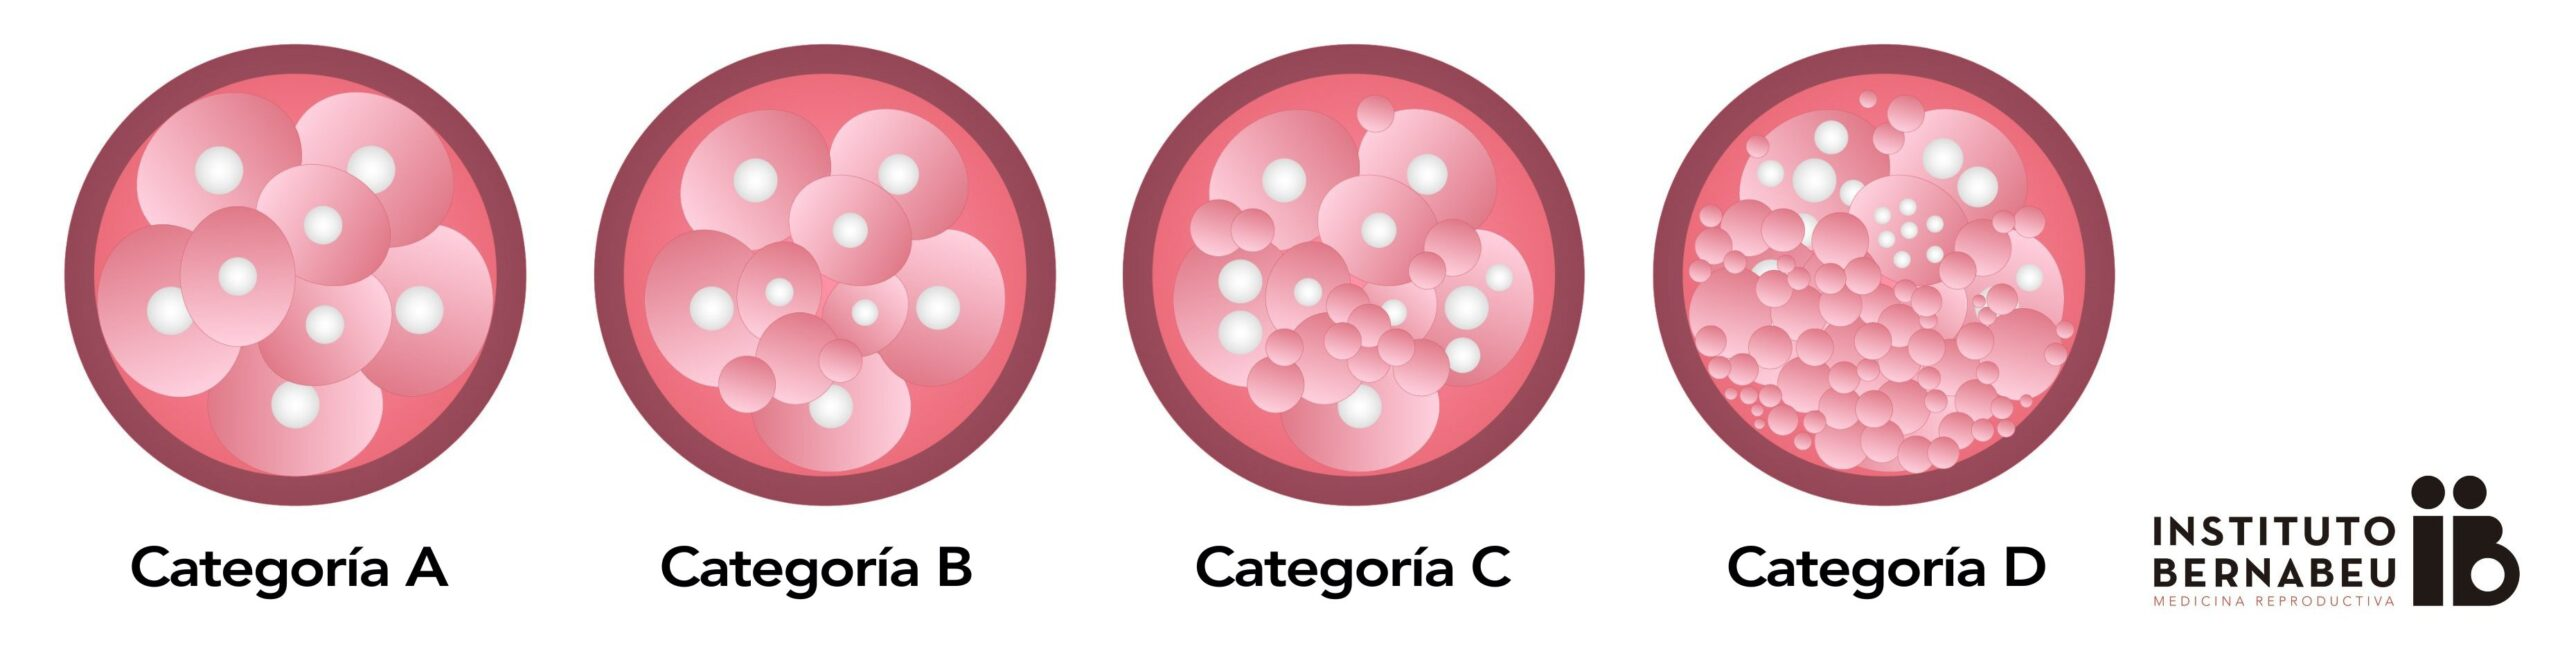 Criteria for classifying embryos